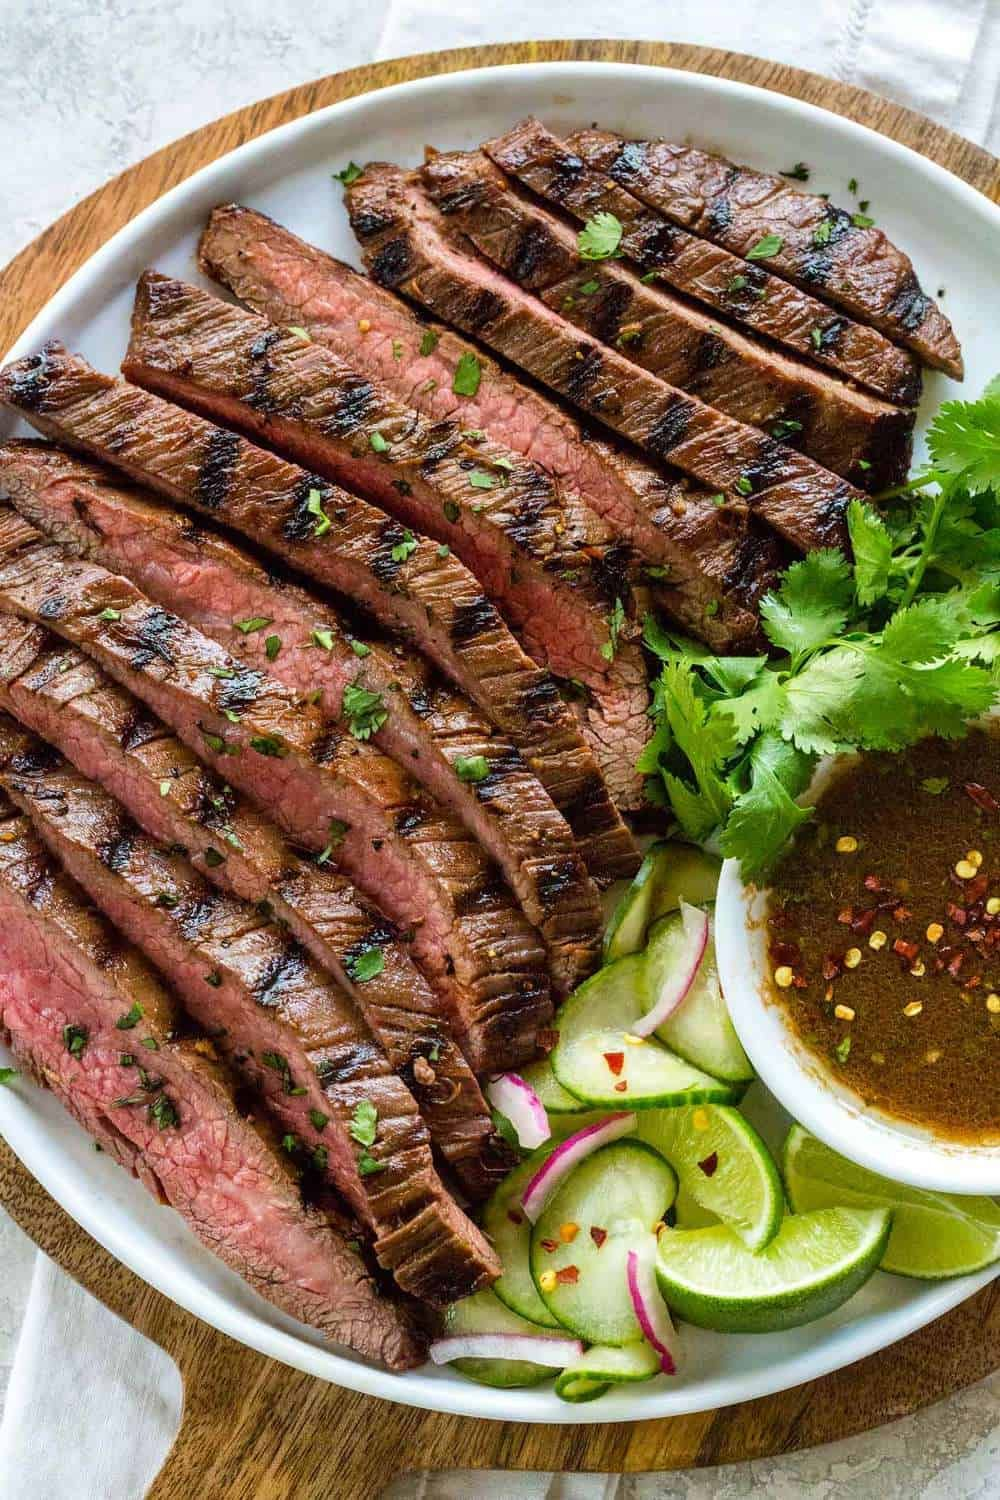 Grilled Flank Steak Marinated In A Bold Asian Inspired Mixture Of Soy Sauce Ginger Garl Flank Steak Recipes Grilled Flank Steak Recipes Grilled Steak Recipes